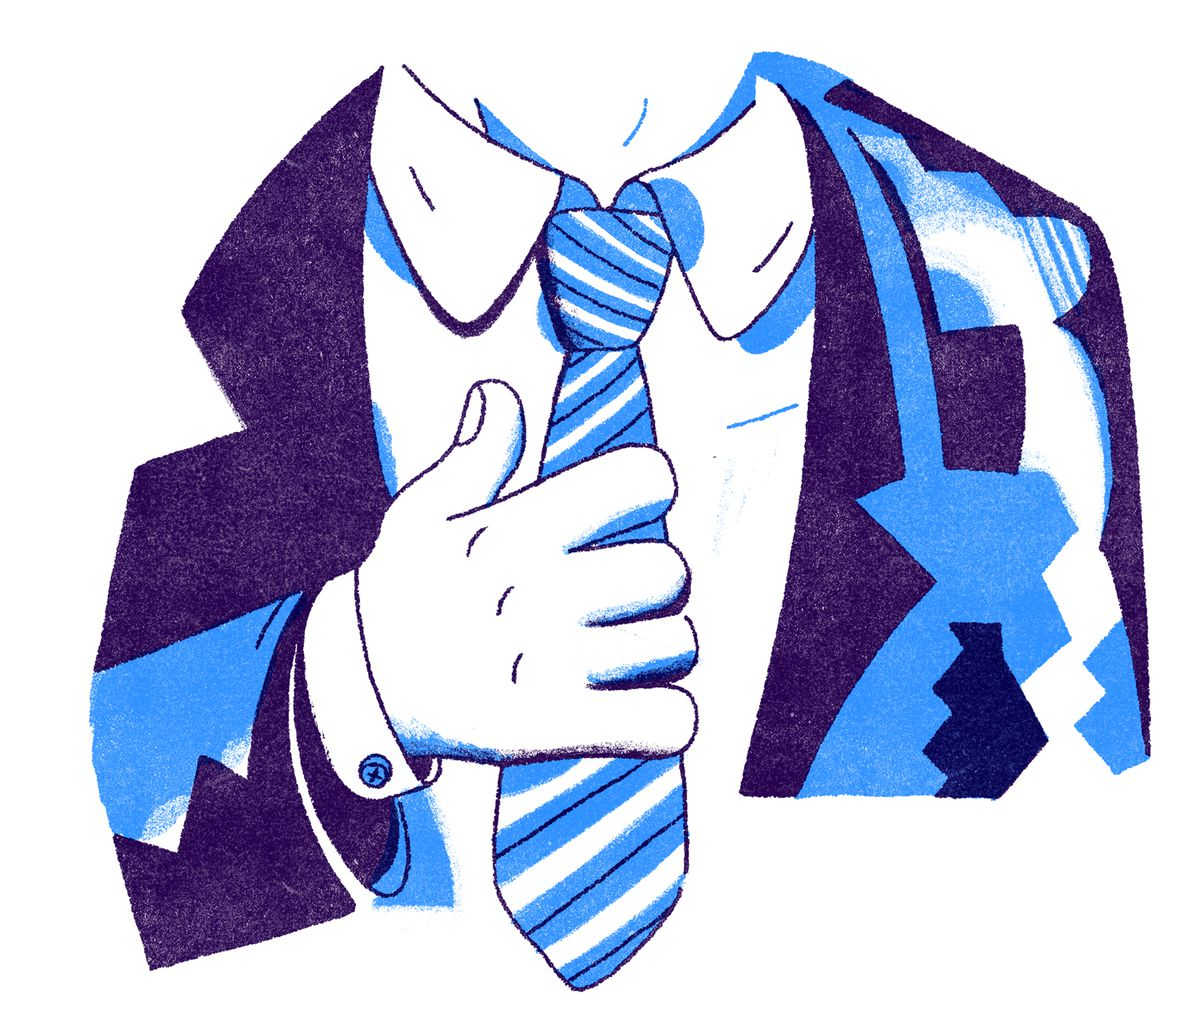 A close-cropped image of a dapper man straightening his tie. Illustration.